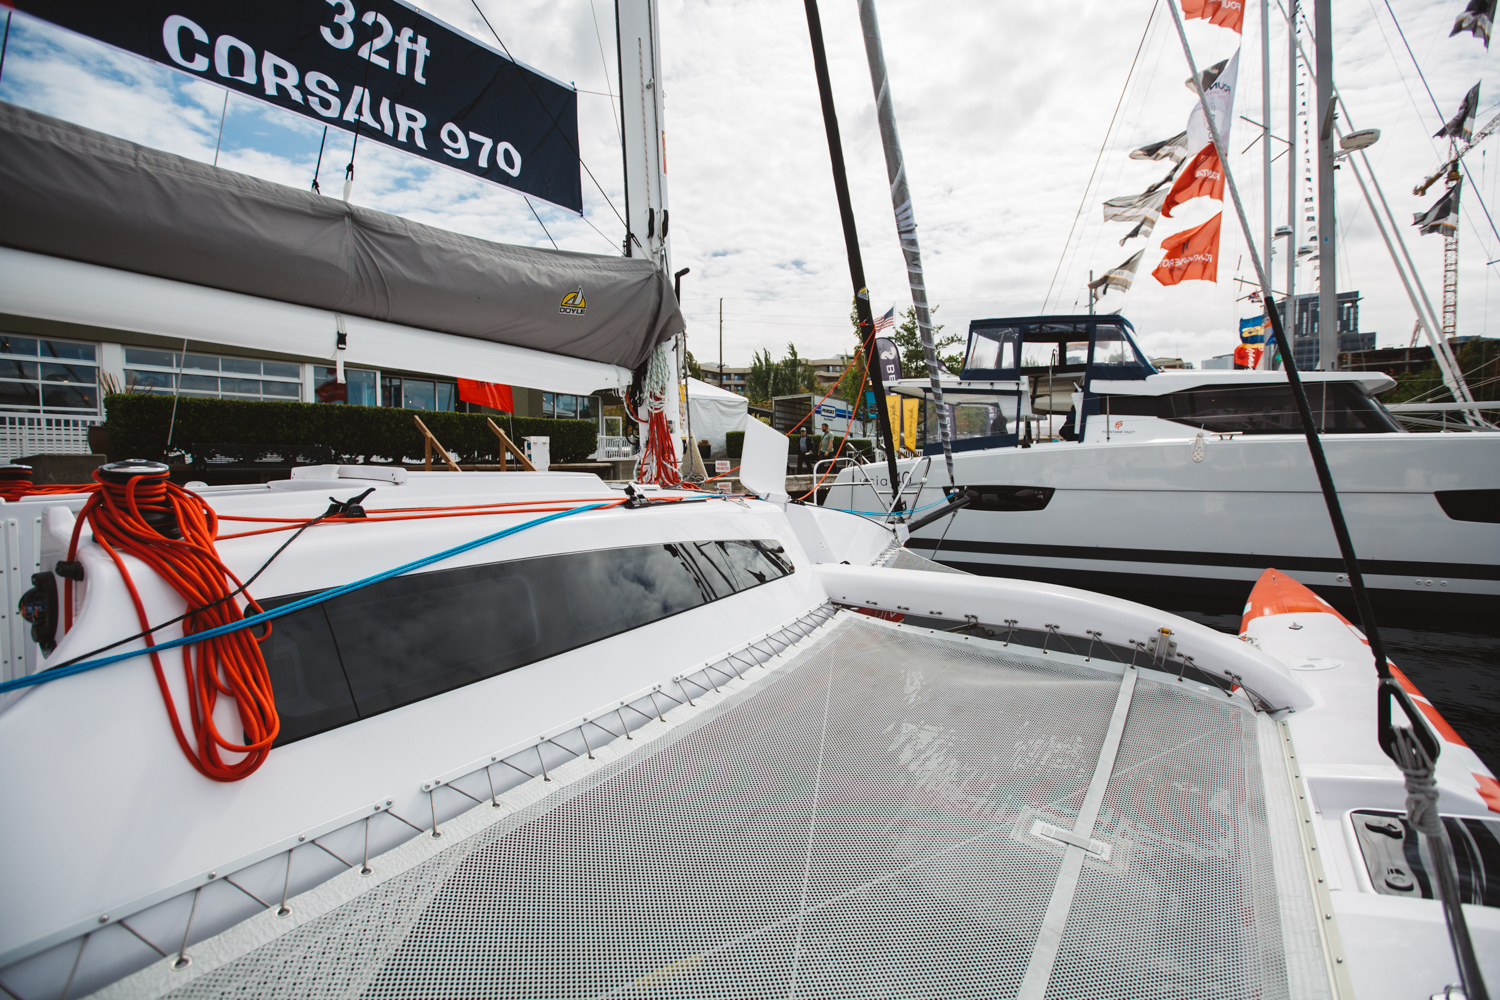 <p>With a fleet that encompasses over 225 vessels, the Boats Afloat Show located at Lake Union highlights some of the finest boats to grace the open waters. This 32' 2018 Corsair 970 Sport boasts a unique package with a foldable mast built for road trailering, and the ability to be at home racing, cruising, and passagemaking. Coming in at $258,000, this trimaran allows you the liberty of spending a weekend with the family, while also exceeding your sailing performance expectations. (Image: Ryan McBoyle / Seattle Refined)</p>